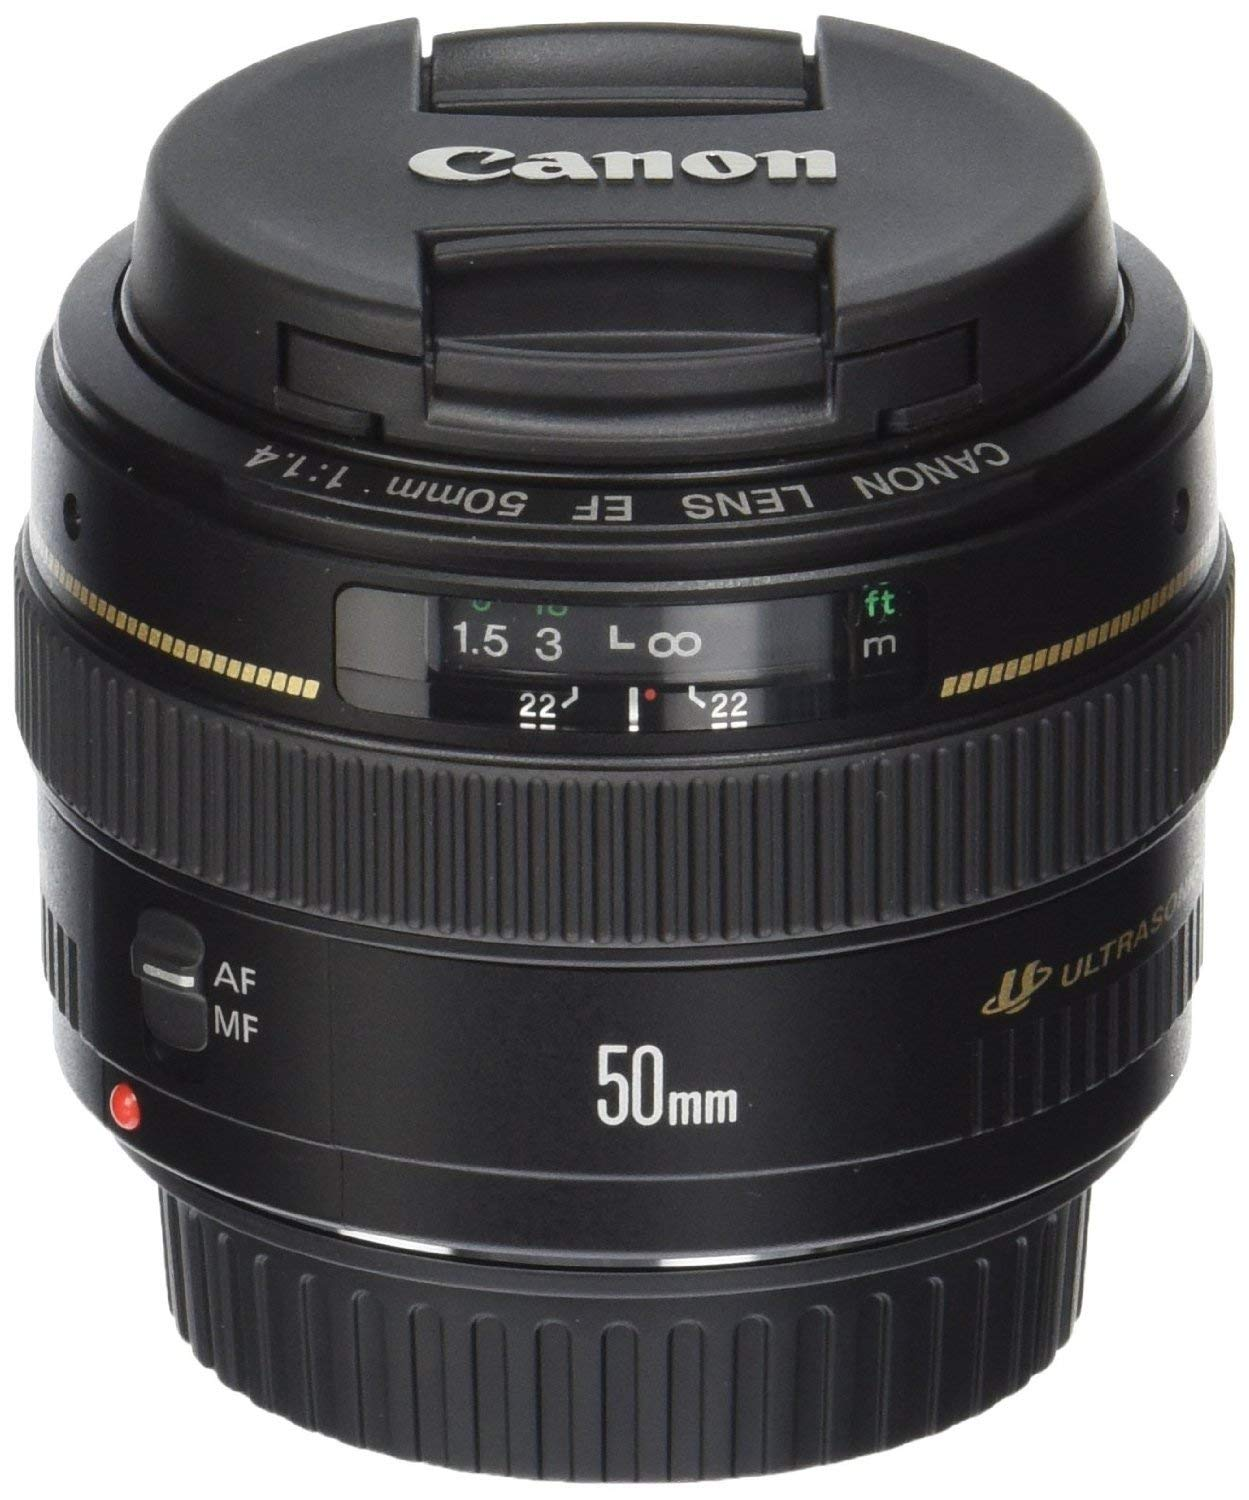 Canon EF 50mm f/1.4 USM Standard & Medium Telephoto Lens for Canon SLR Cameras - Fixed (Renewed) by Canon